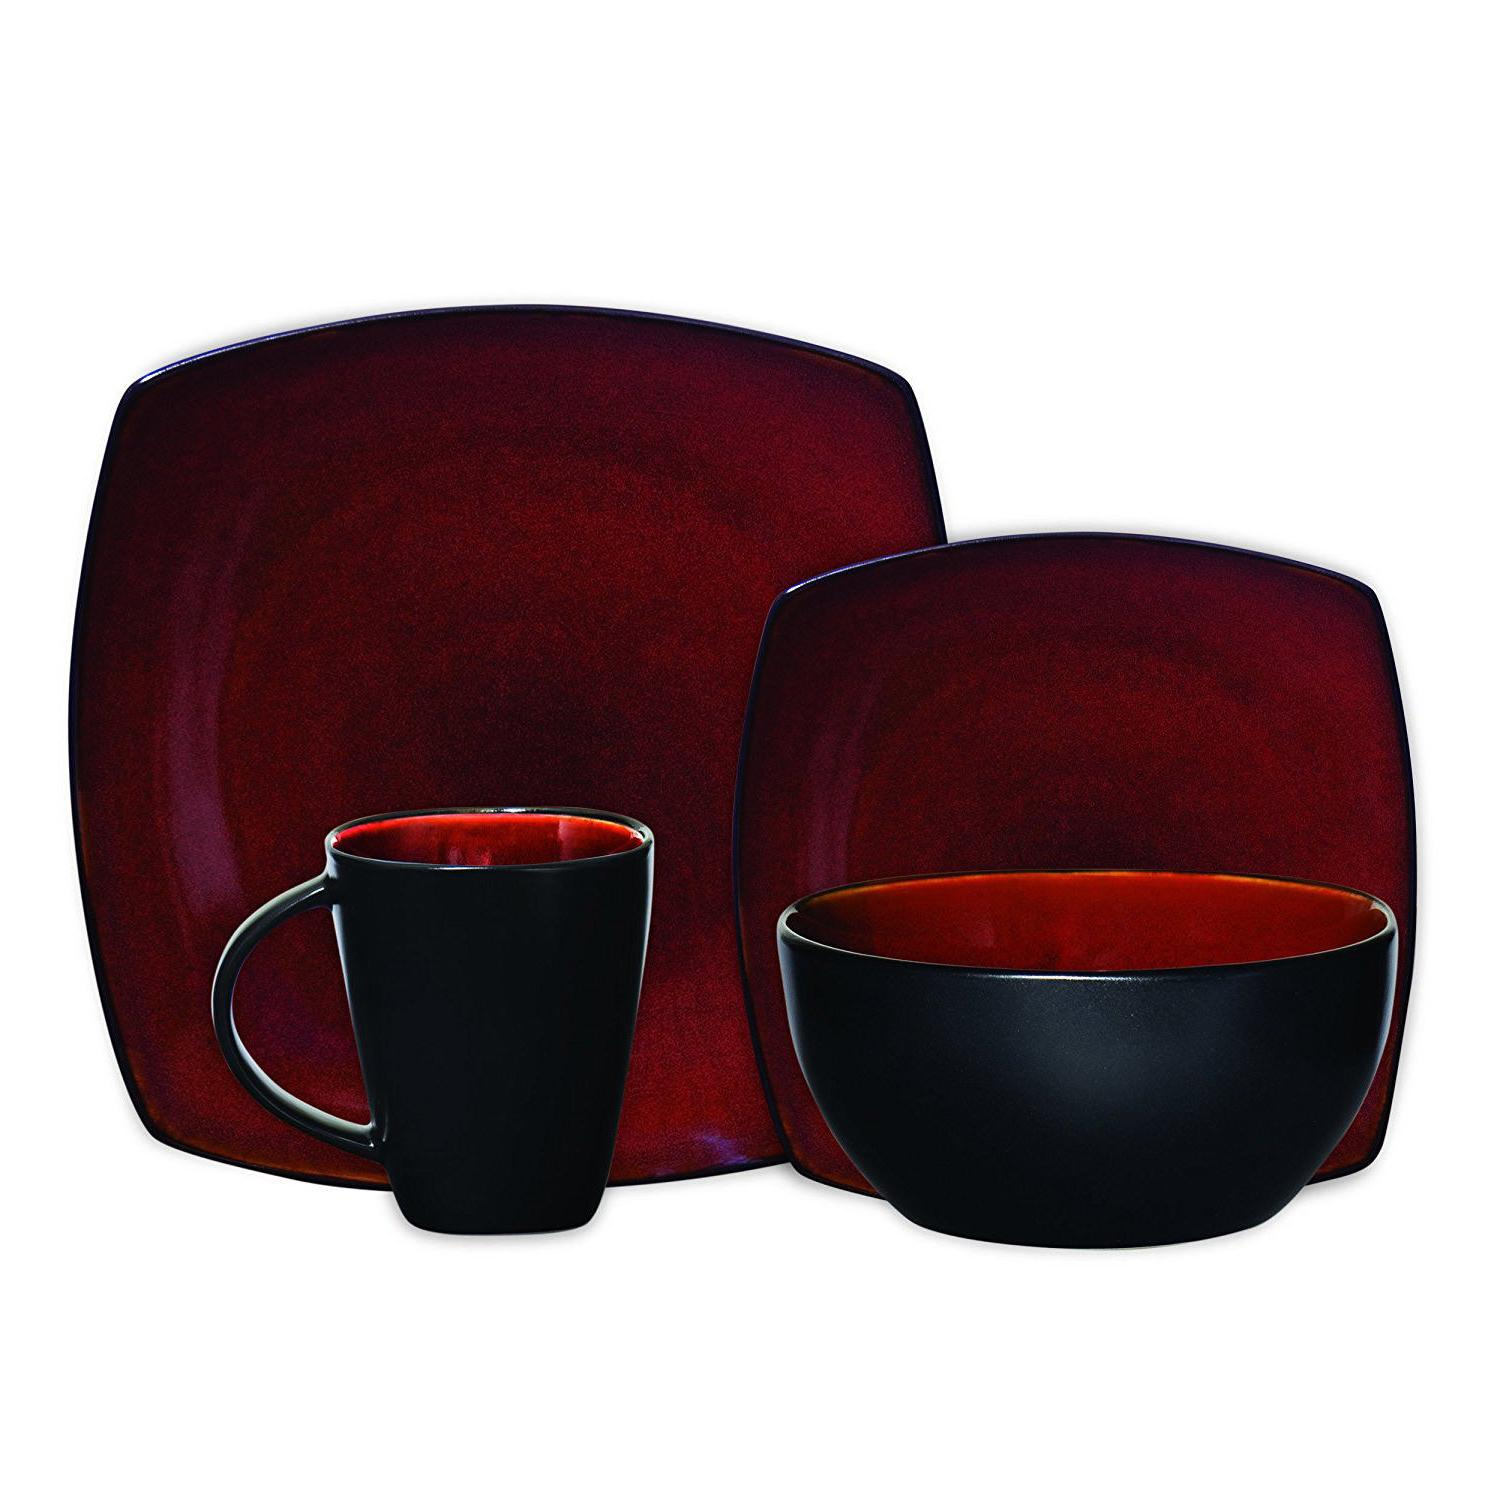 Dinnerware Set Square Plates Mugs Home Kitchen 16 Pcs Red